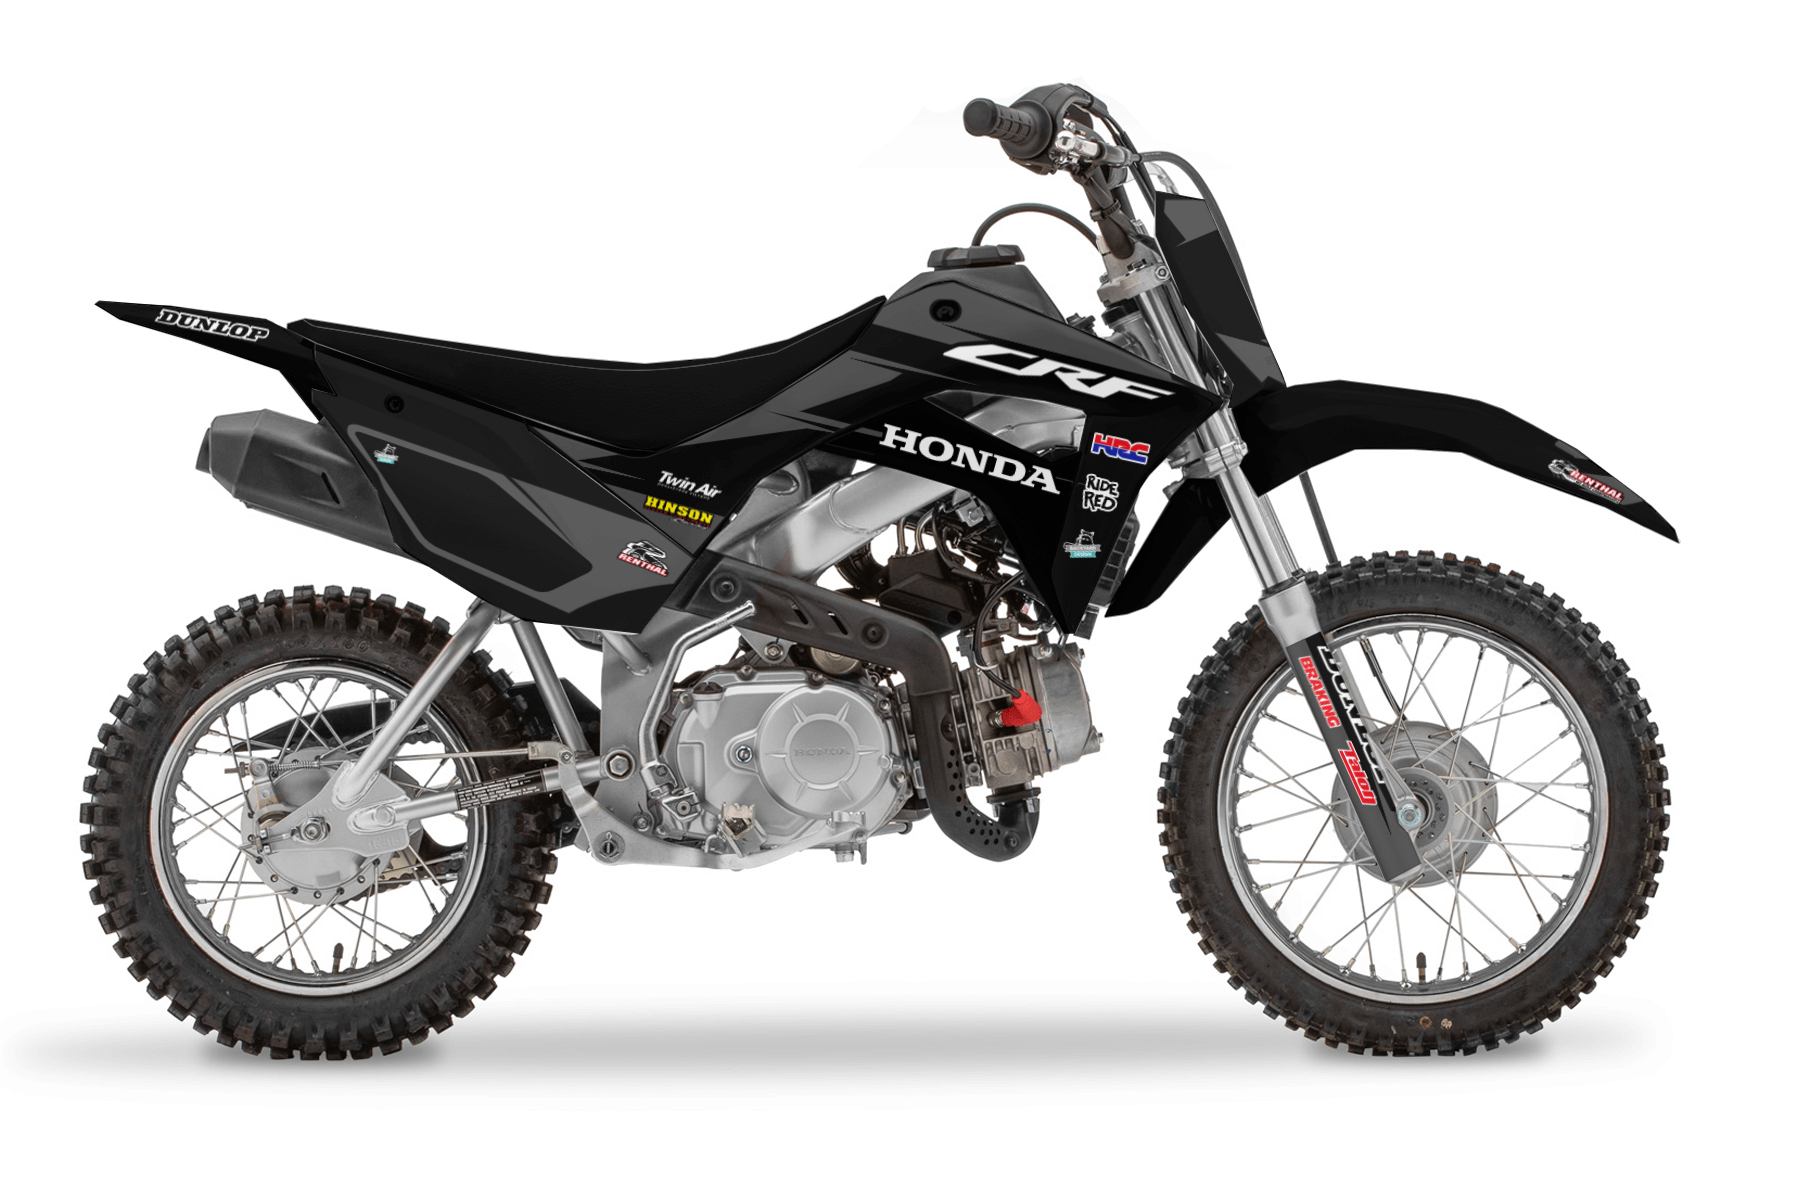 Honda Pitbike CRF 110 MX Graphic Kits  The Honda CRF110 is designed for a young generation to start their journey of becoming an offroad pro. A sturdy bike with enough power to better yourself daily.